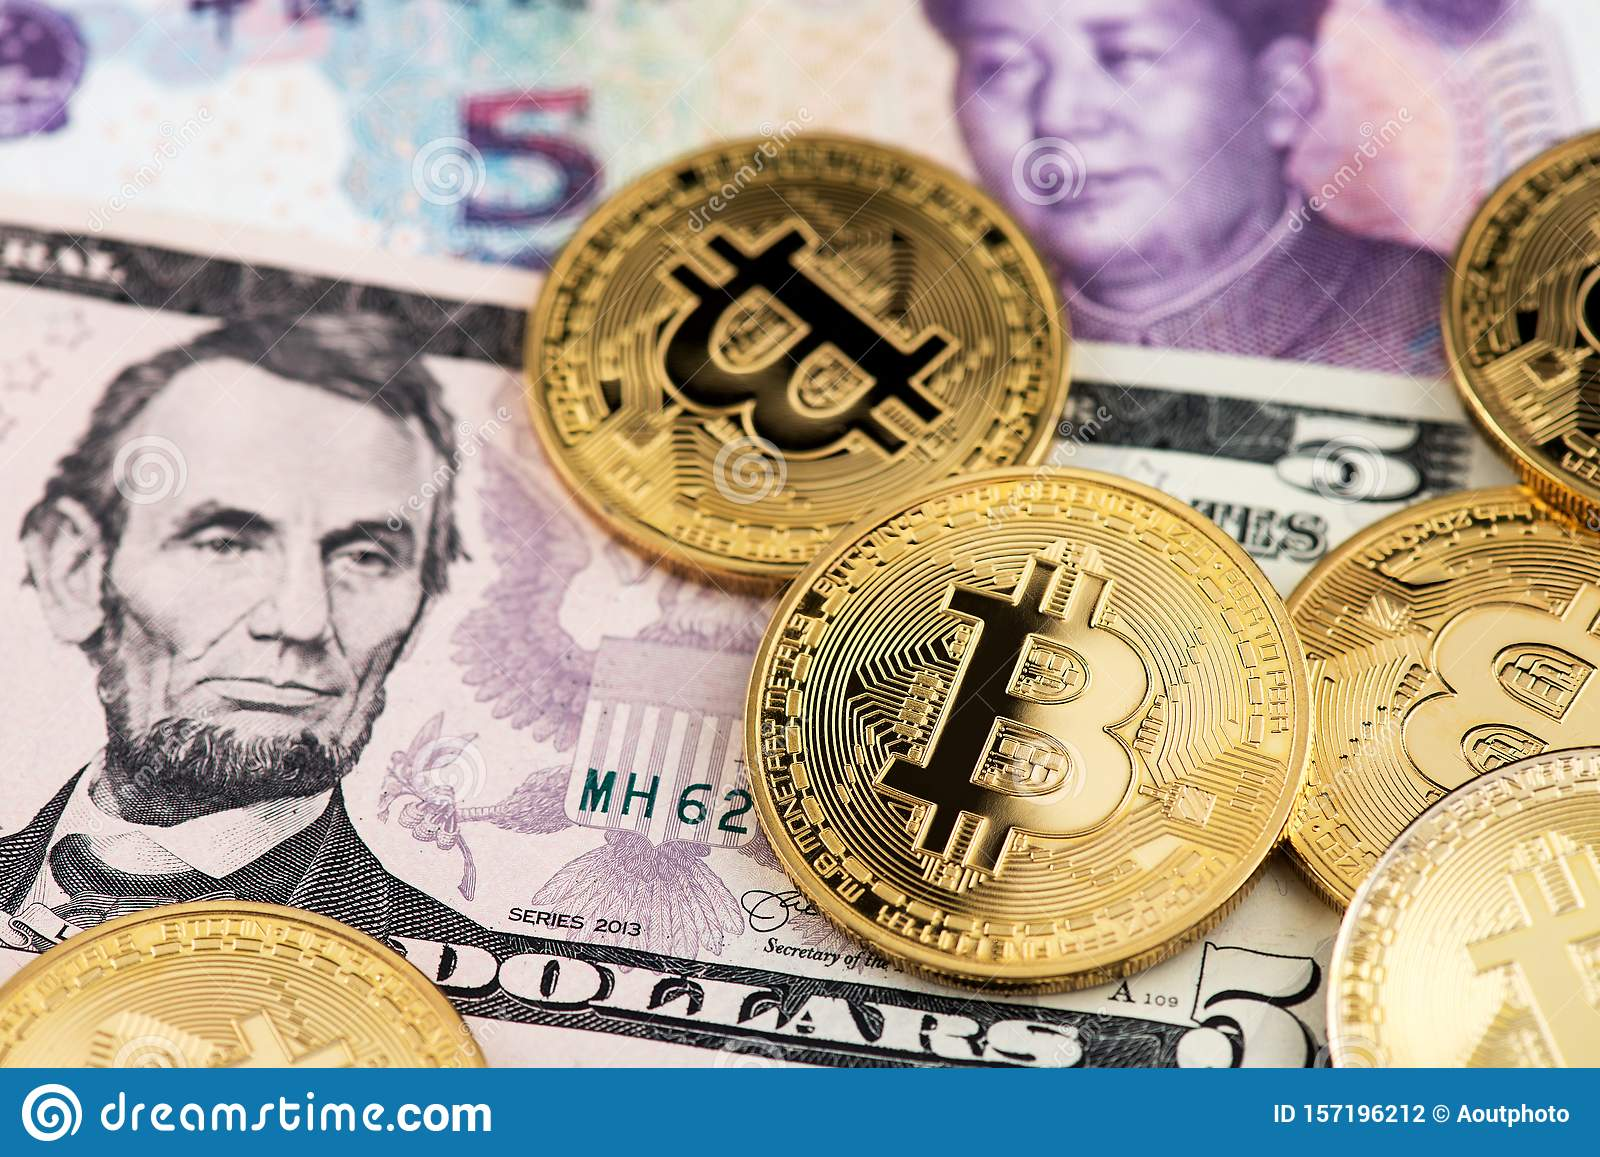 china coins cryptocurrency